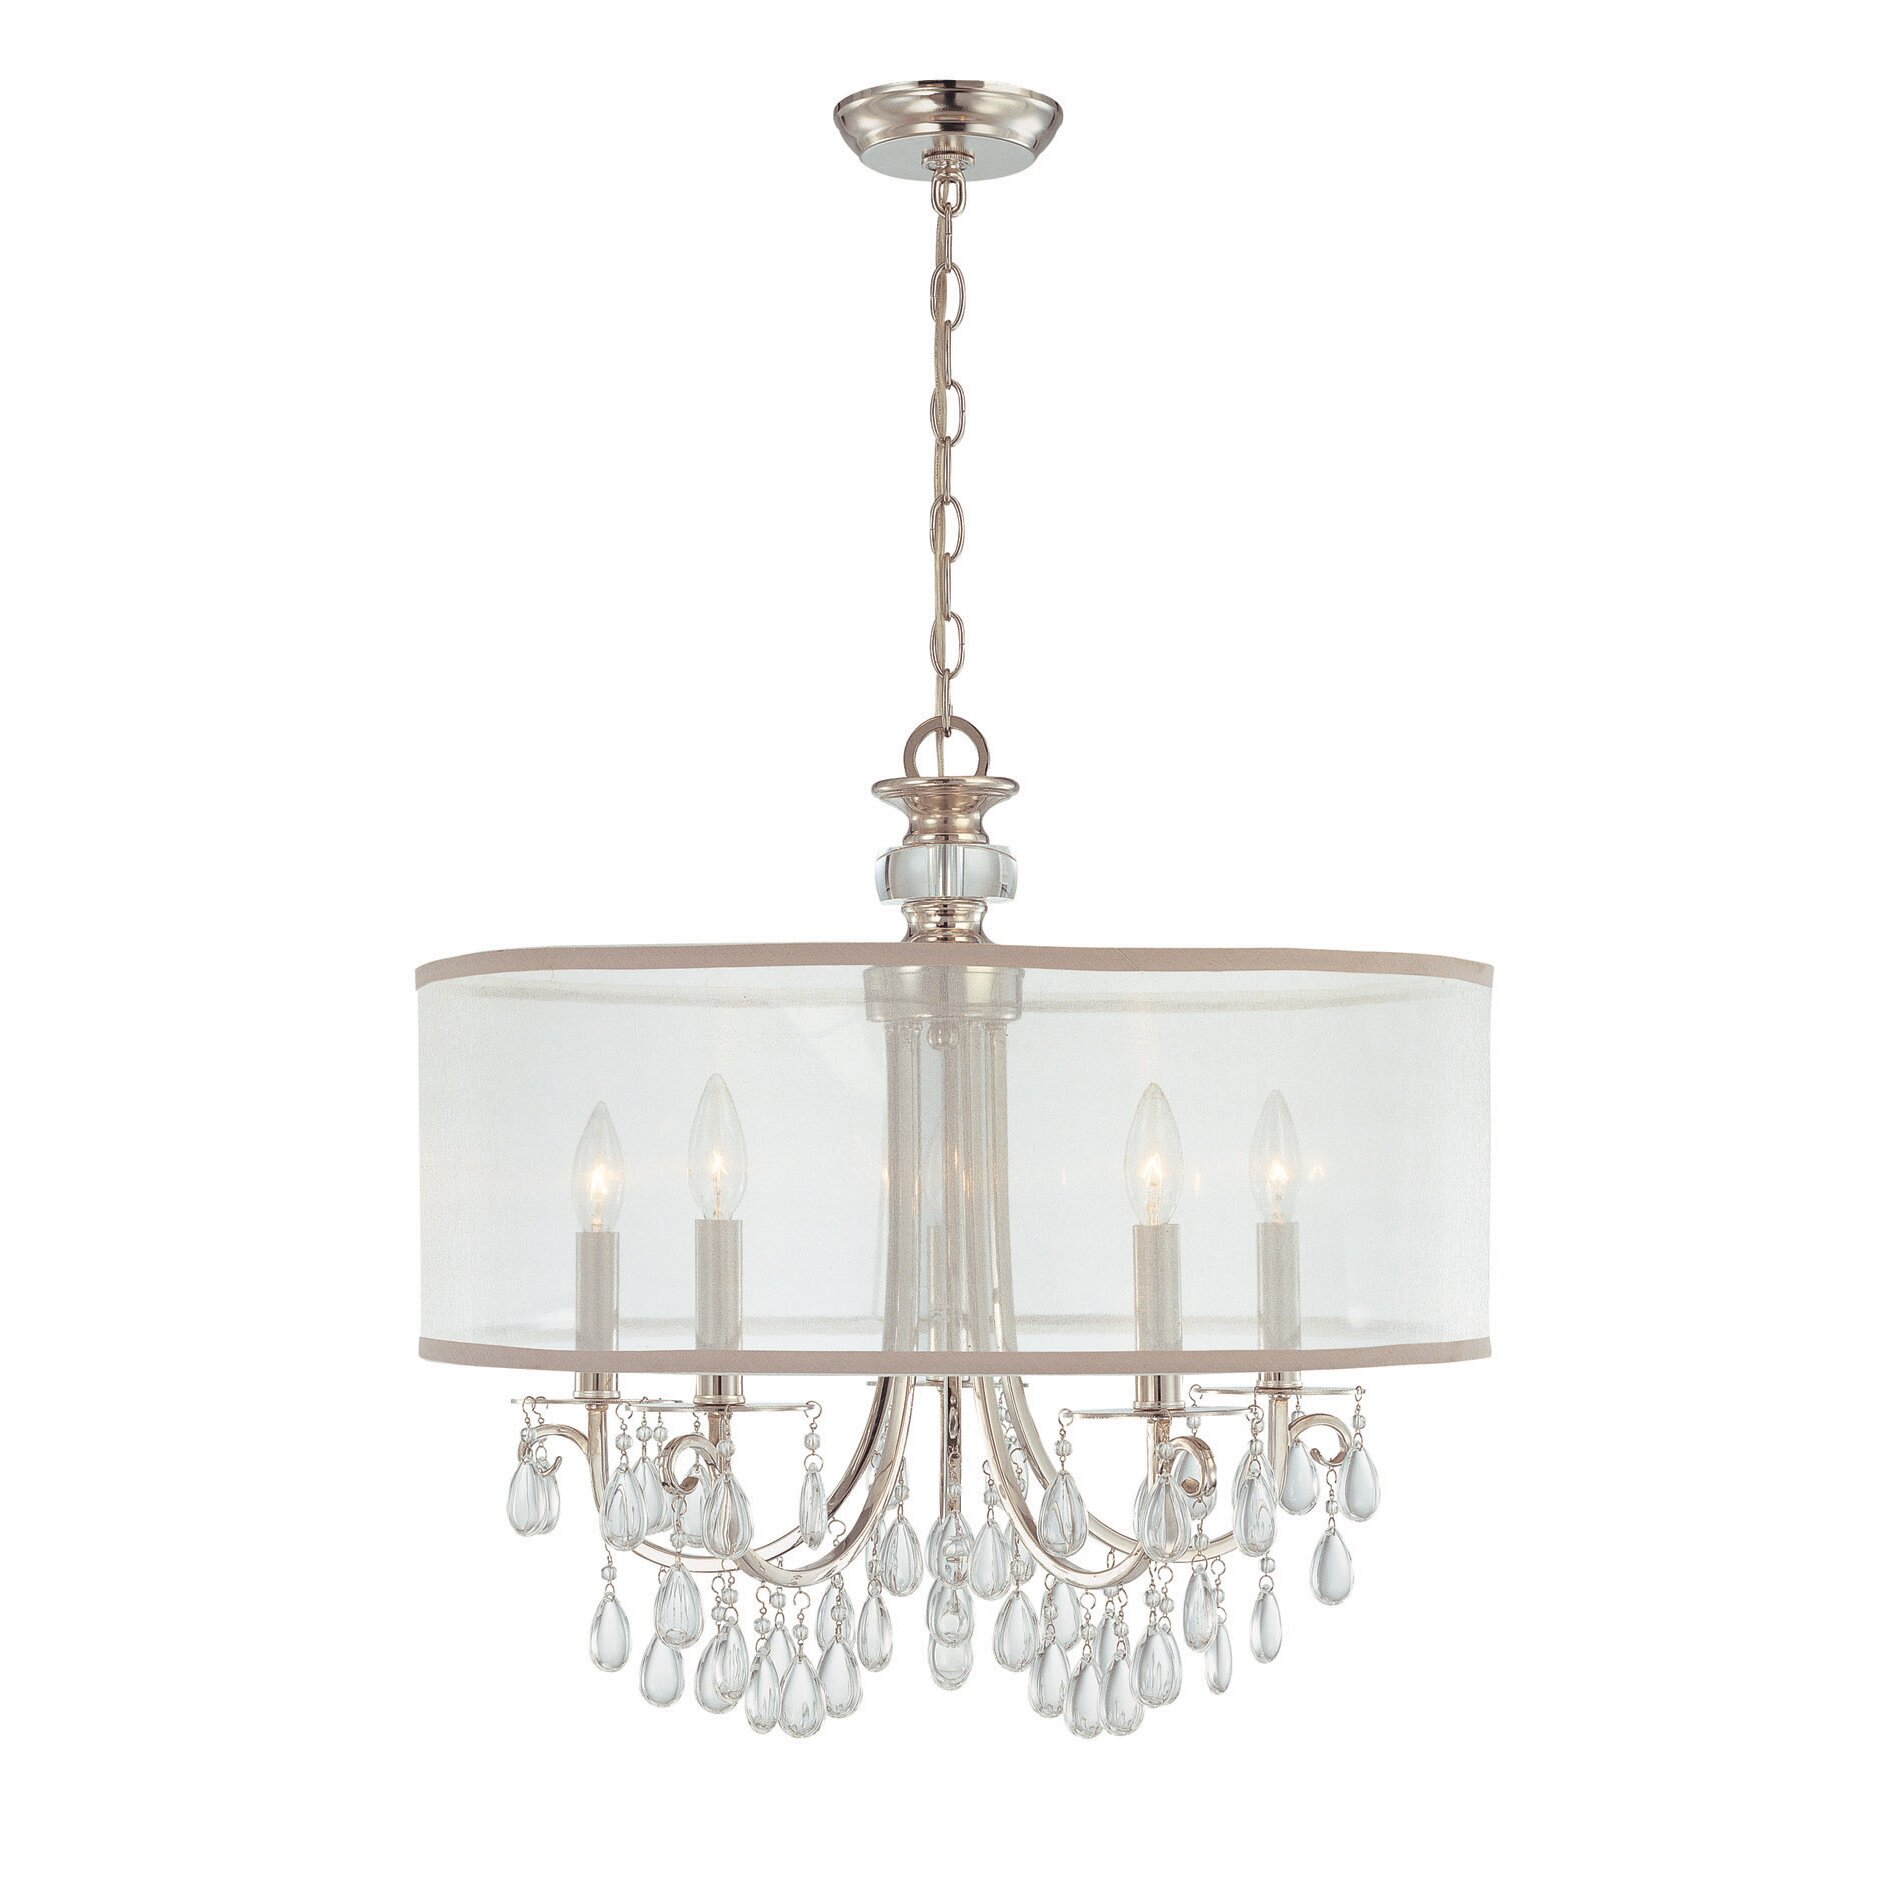 crystorama hampton 5 light chandelier reviews wayfair. Black Bedroom Furniture Sets. Home Design Ideas